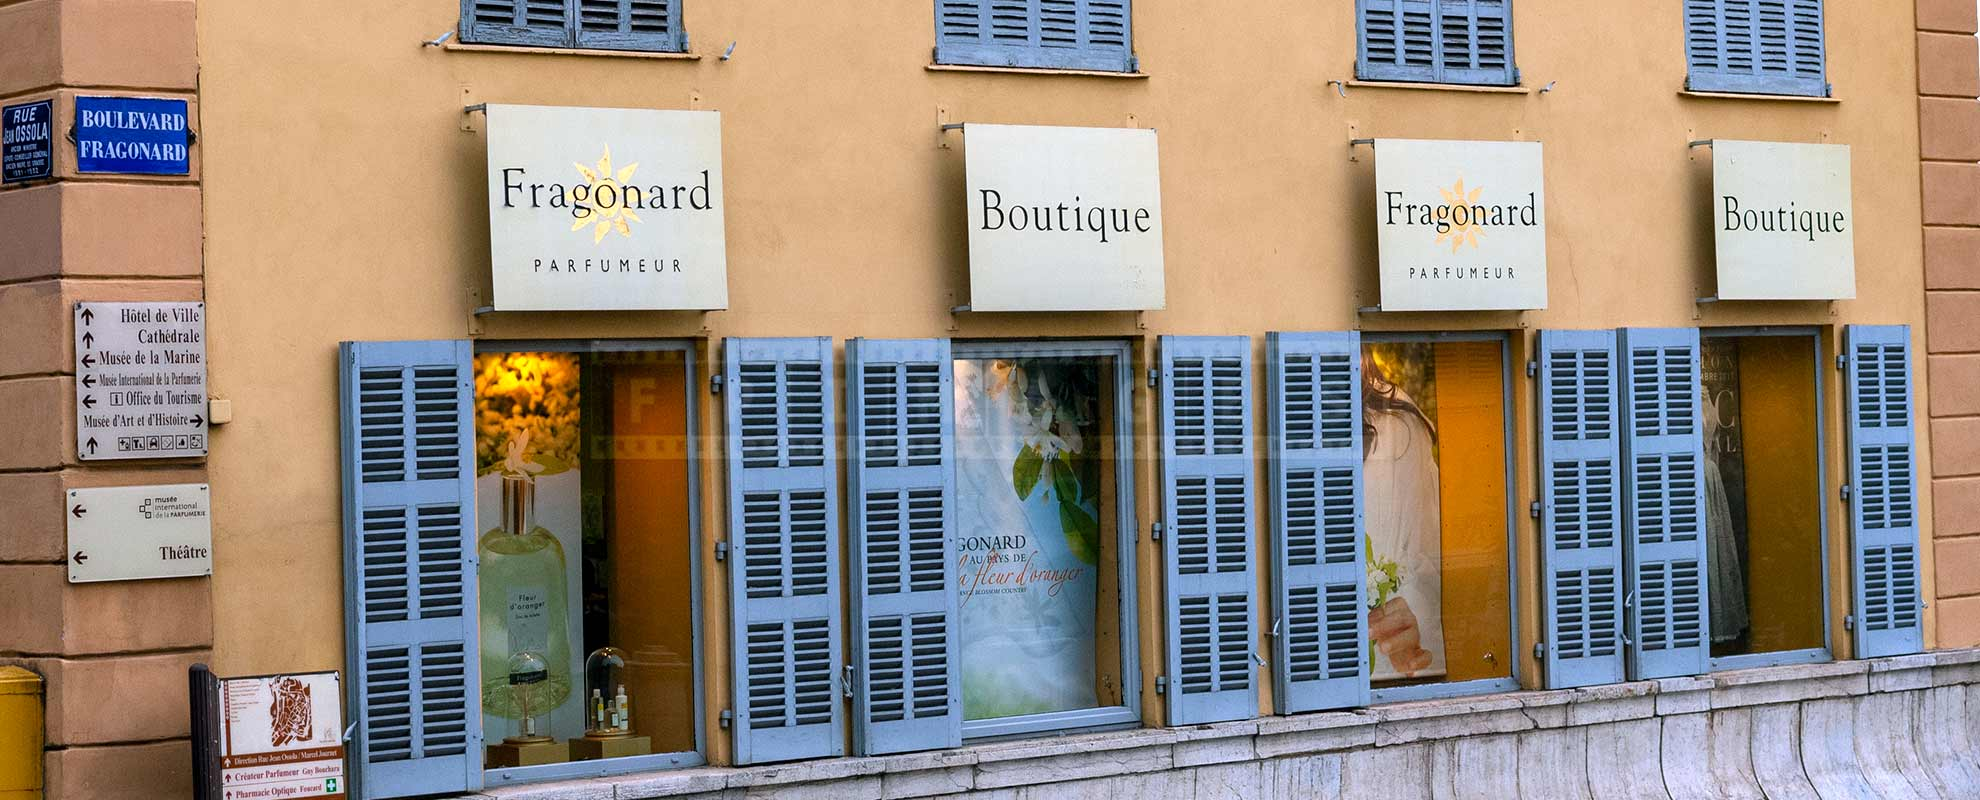 Fragonard - unique perfume museum and boutique in France